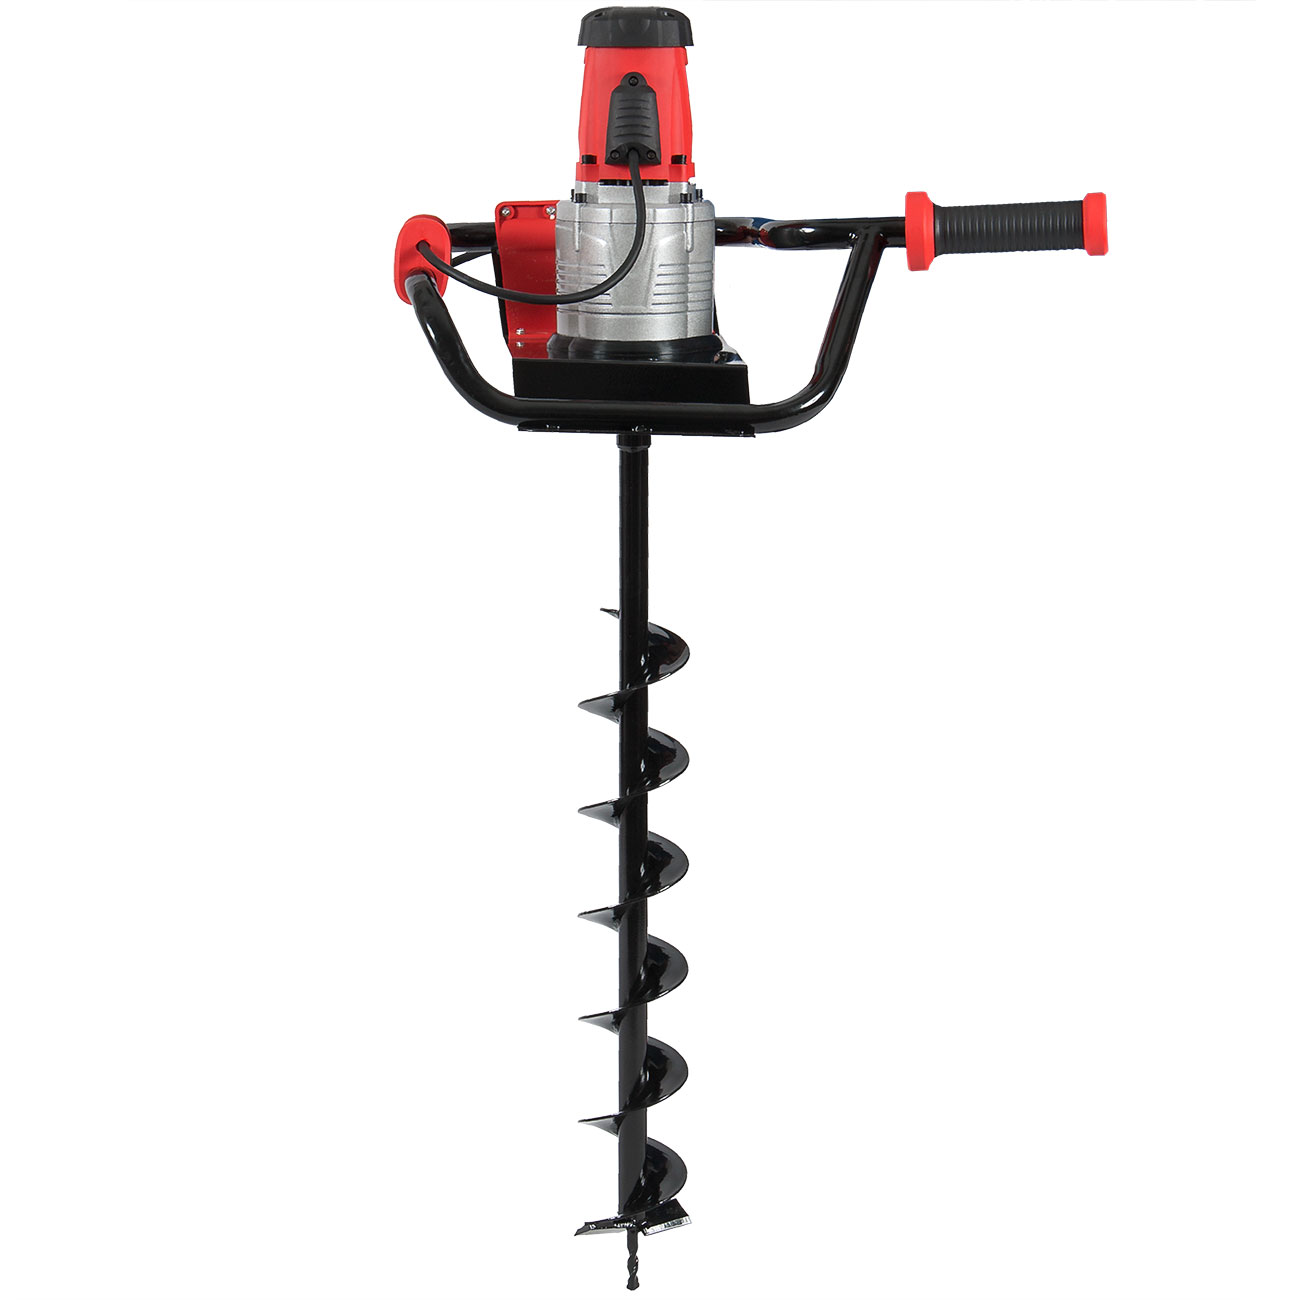 W Electric 1 6hp Post Hole Digger Earth Soil W 4 Inch Auger Bit 110v Kit